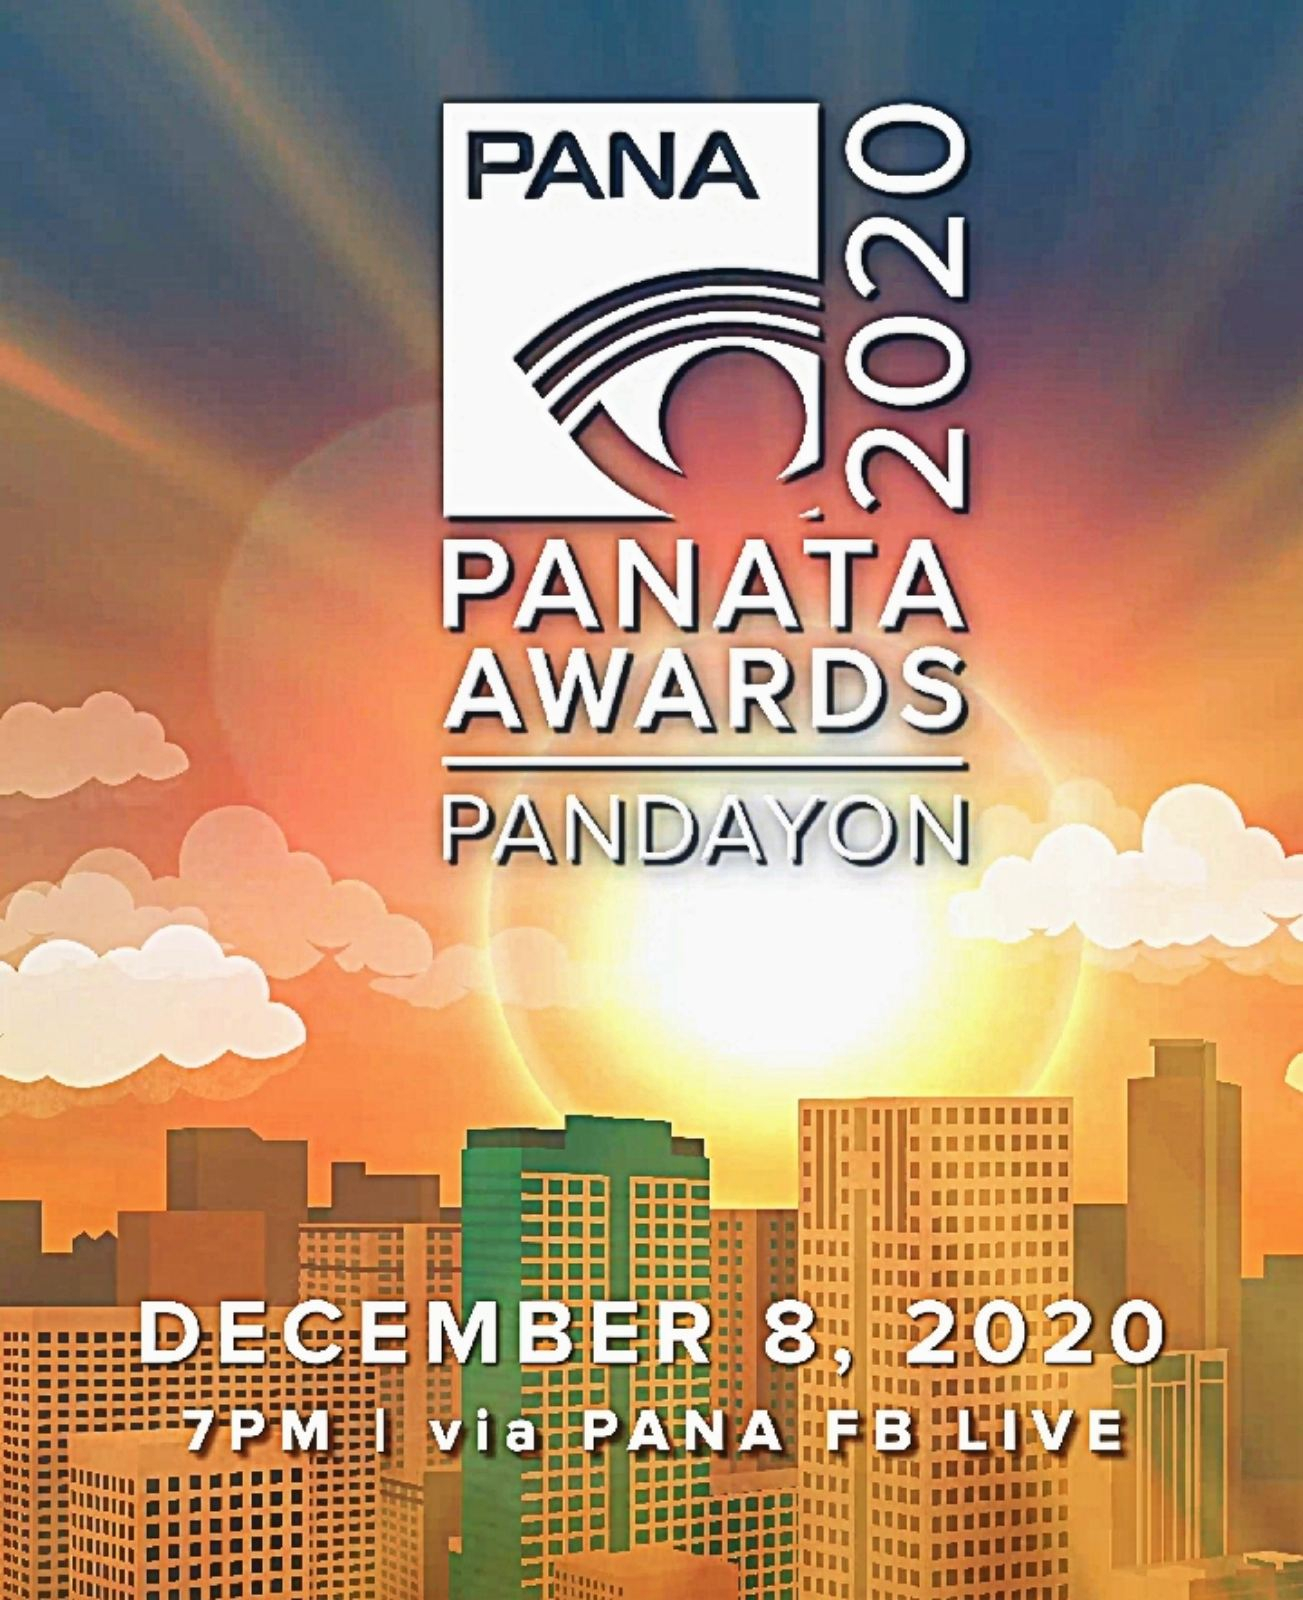 See You On December 8, 7Pm For The Most Exciting Industry intended for Pana Unit 8